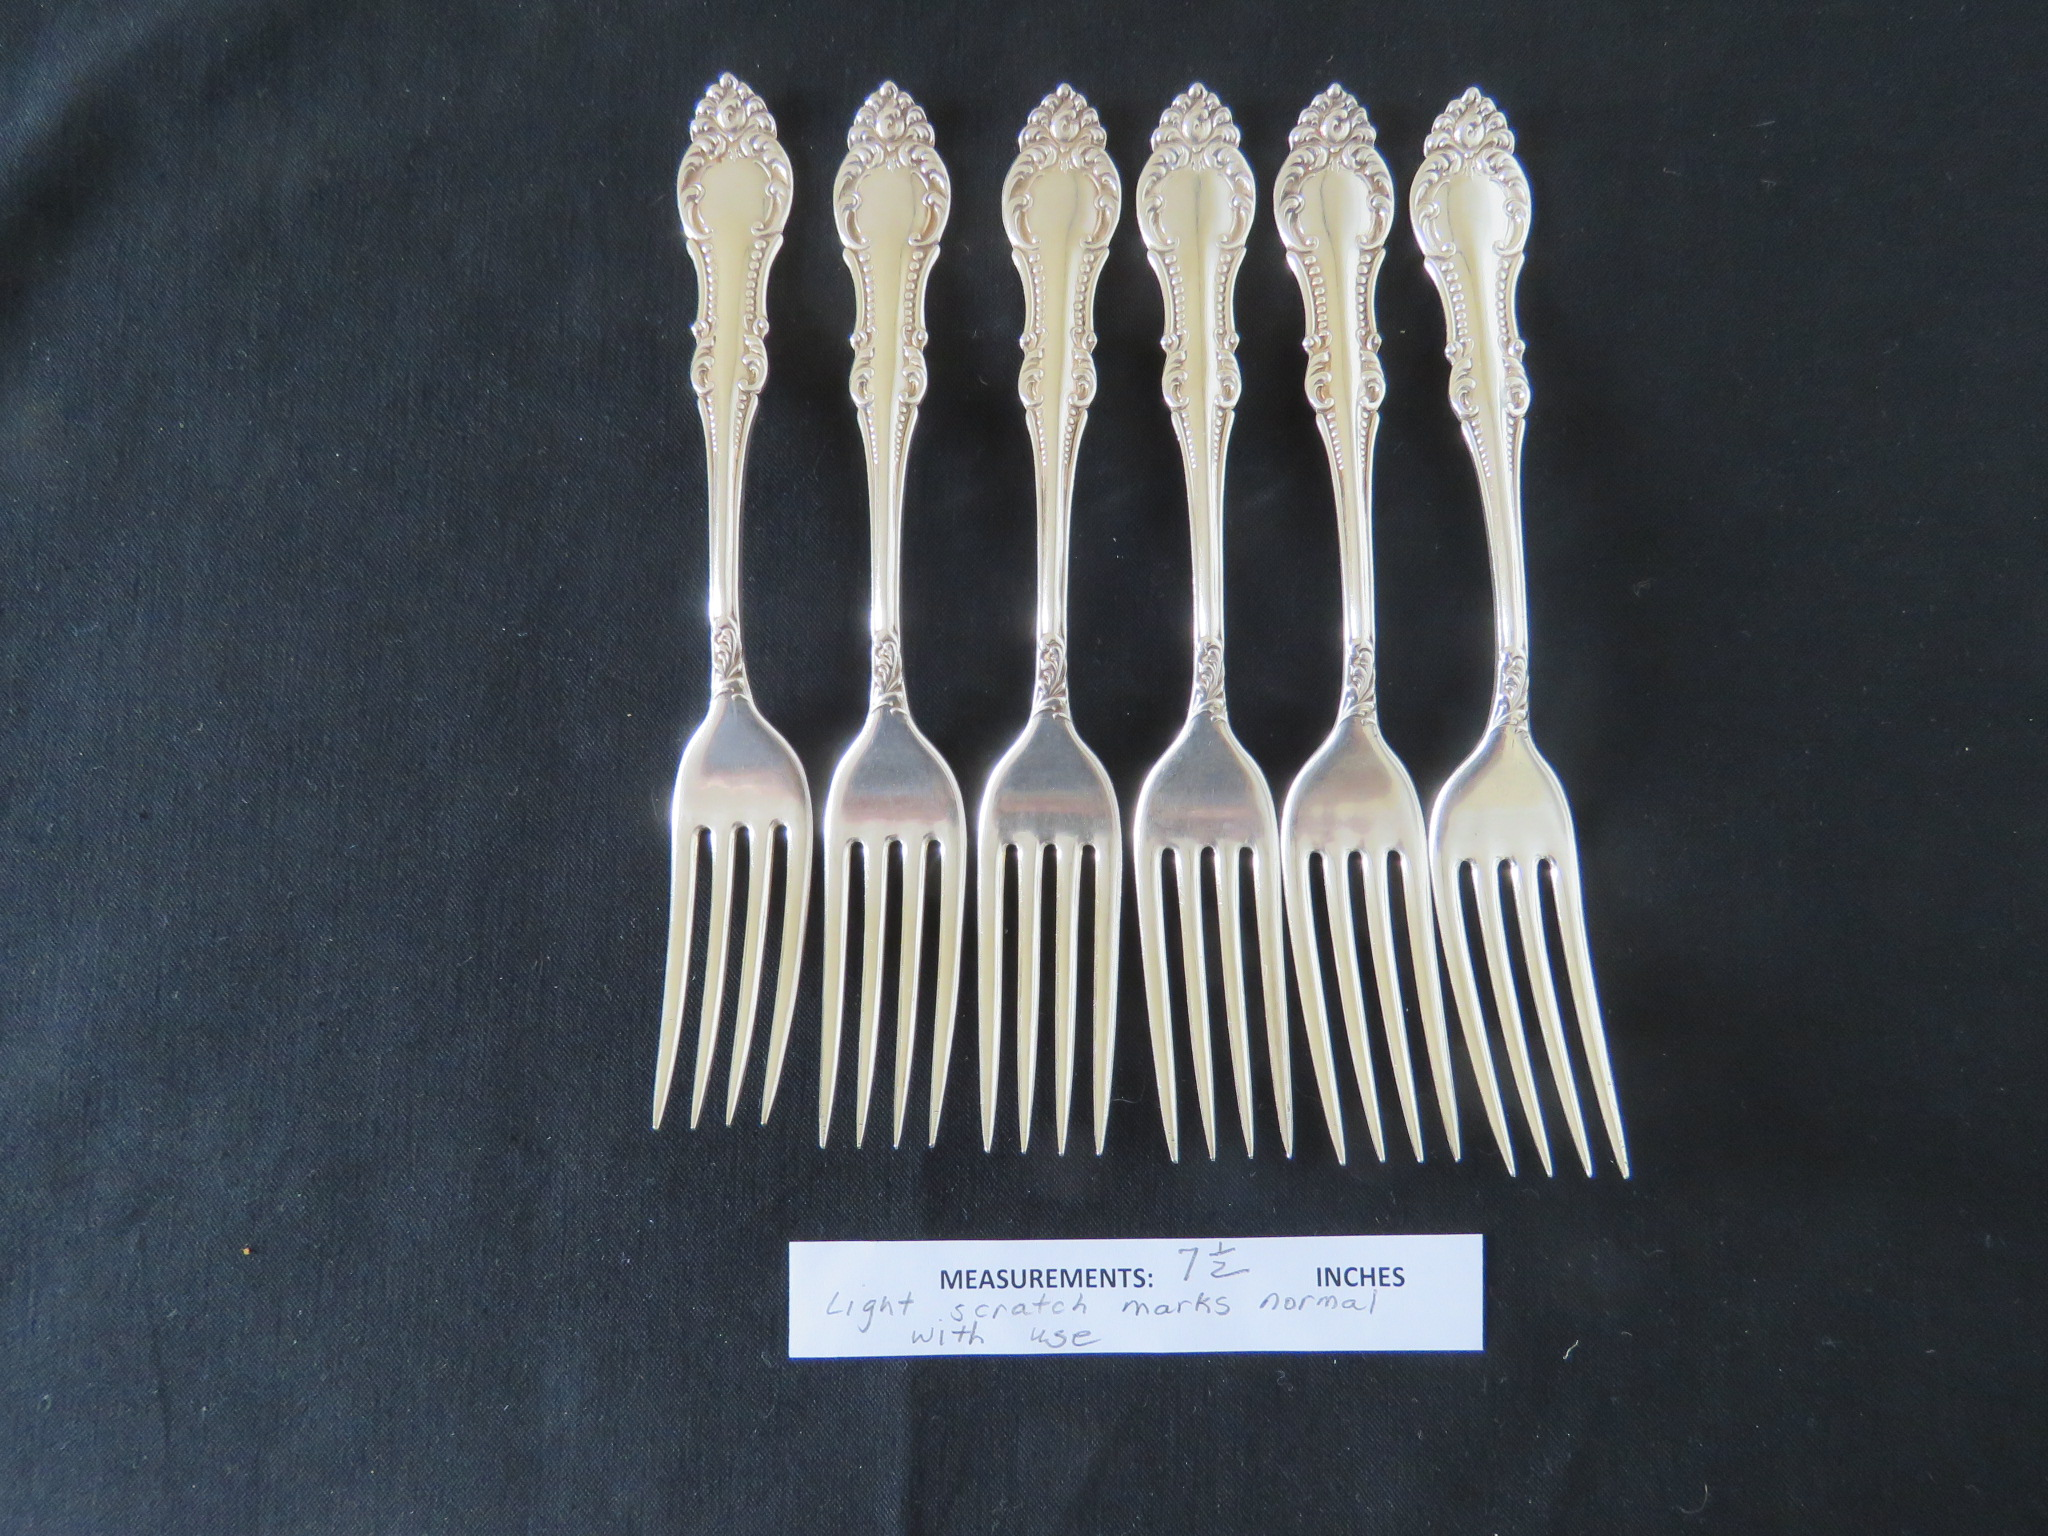 Antique Silverplate Forks Wm A. Rogers Carlton VICTORIAN Fork Set of 6 (SIL-381)